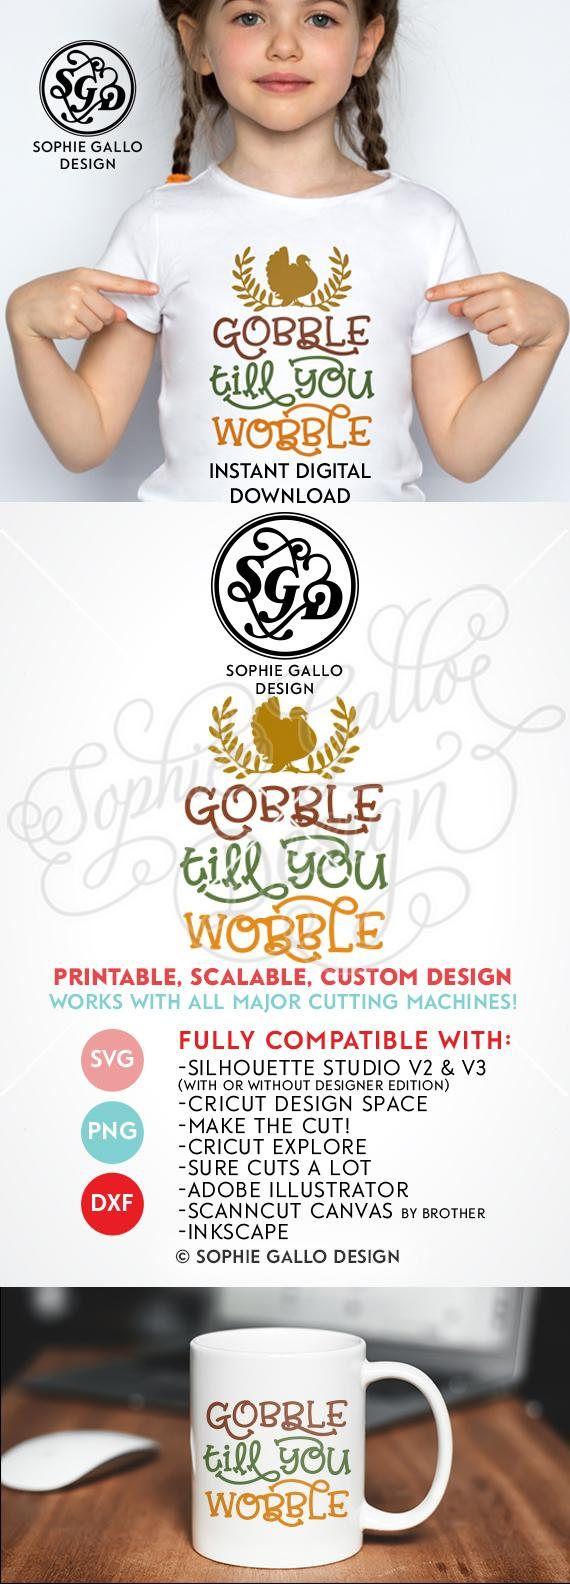 Gobble till you Wobble Cut SVG, PNG & DXF files instant digital download WHAT YOU'LL GET ~ 3 files: 1 SVG file that is compatible with Silhouette Studio, Cricut Design Space, CorelDRAW, Adobe Illustrator, Inkscape, Making the Cut, Sure Cuts A lot, and various other vinyl cutting machines and software. A DXF file (which is compatible with the basic Silhouette Studio program -- no upgrade to design studio necessary)! 1 PNG file that can be edited in Photoshop and other software. NO SHIP...